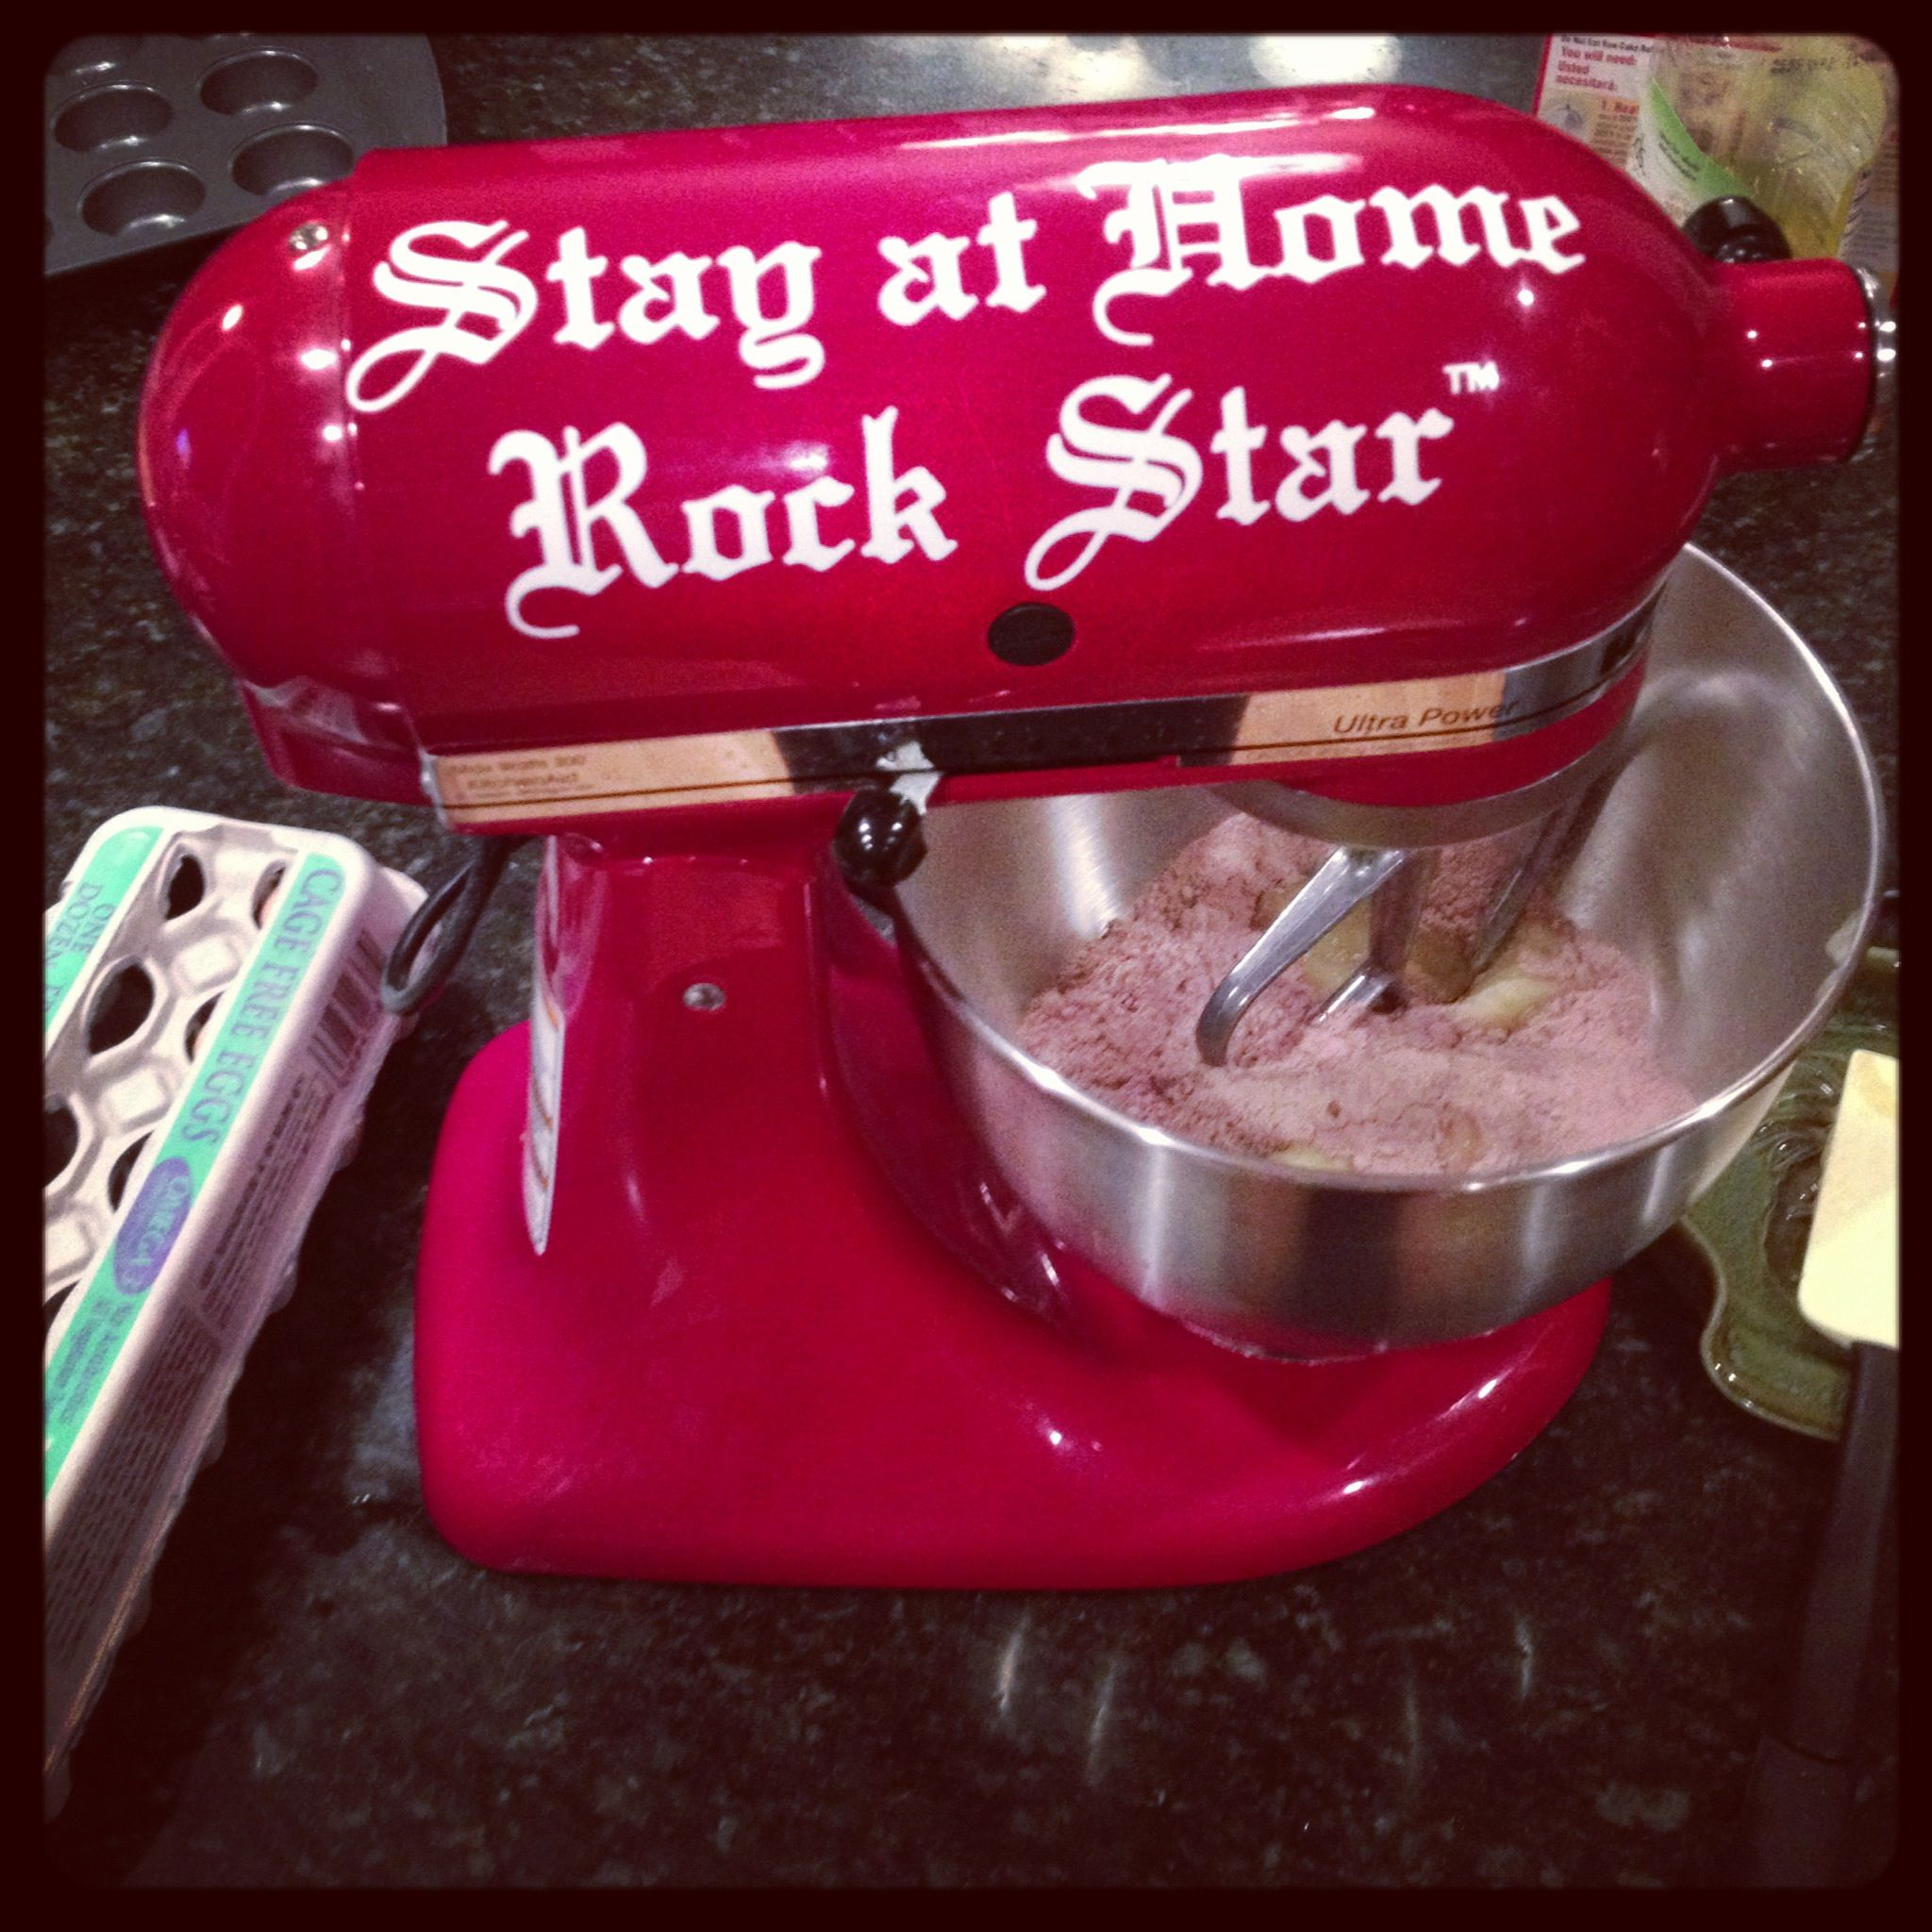 Blinged out kitchenaid bling your stuff rock star www